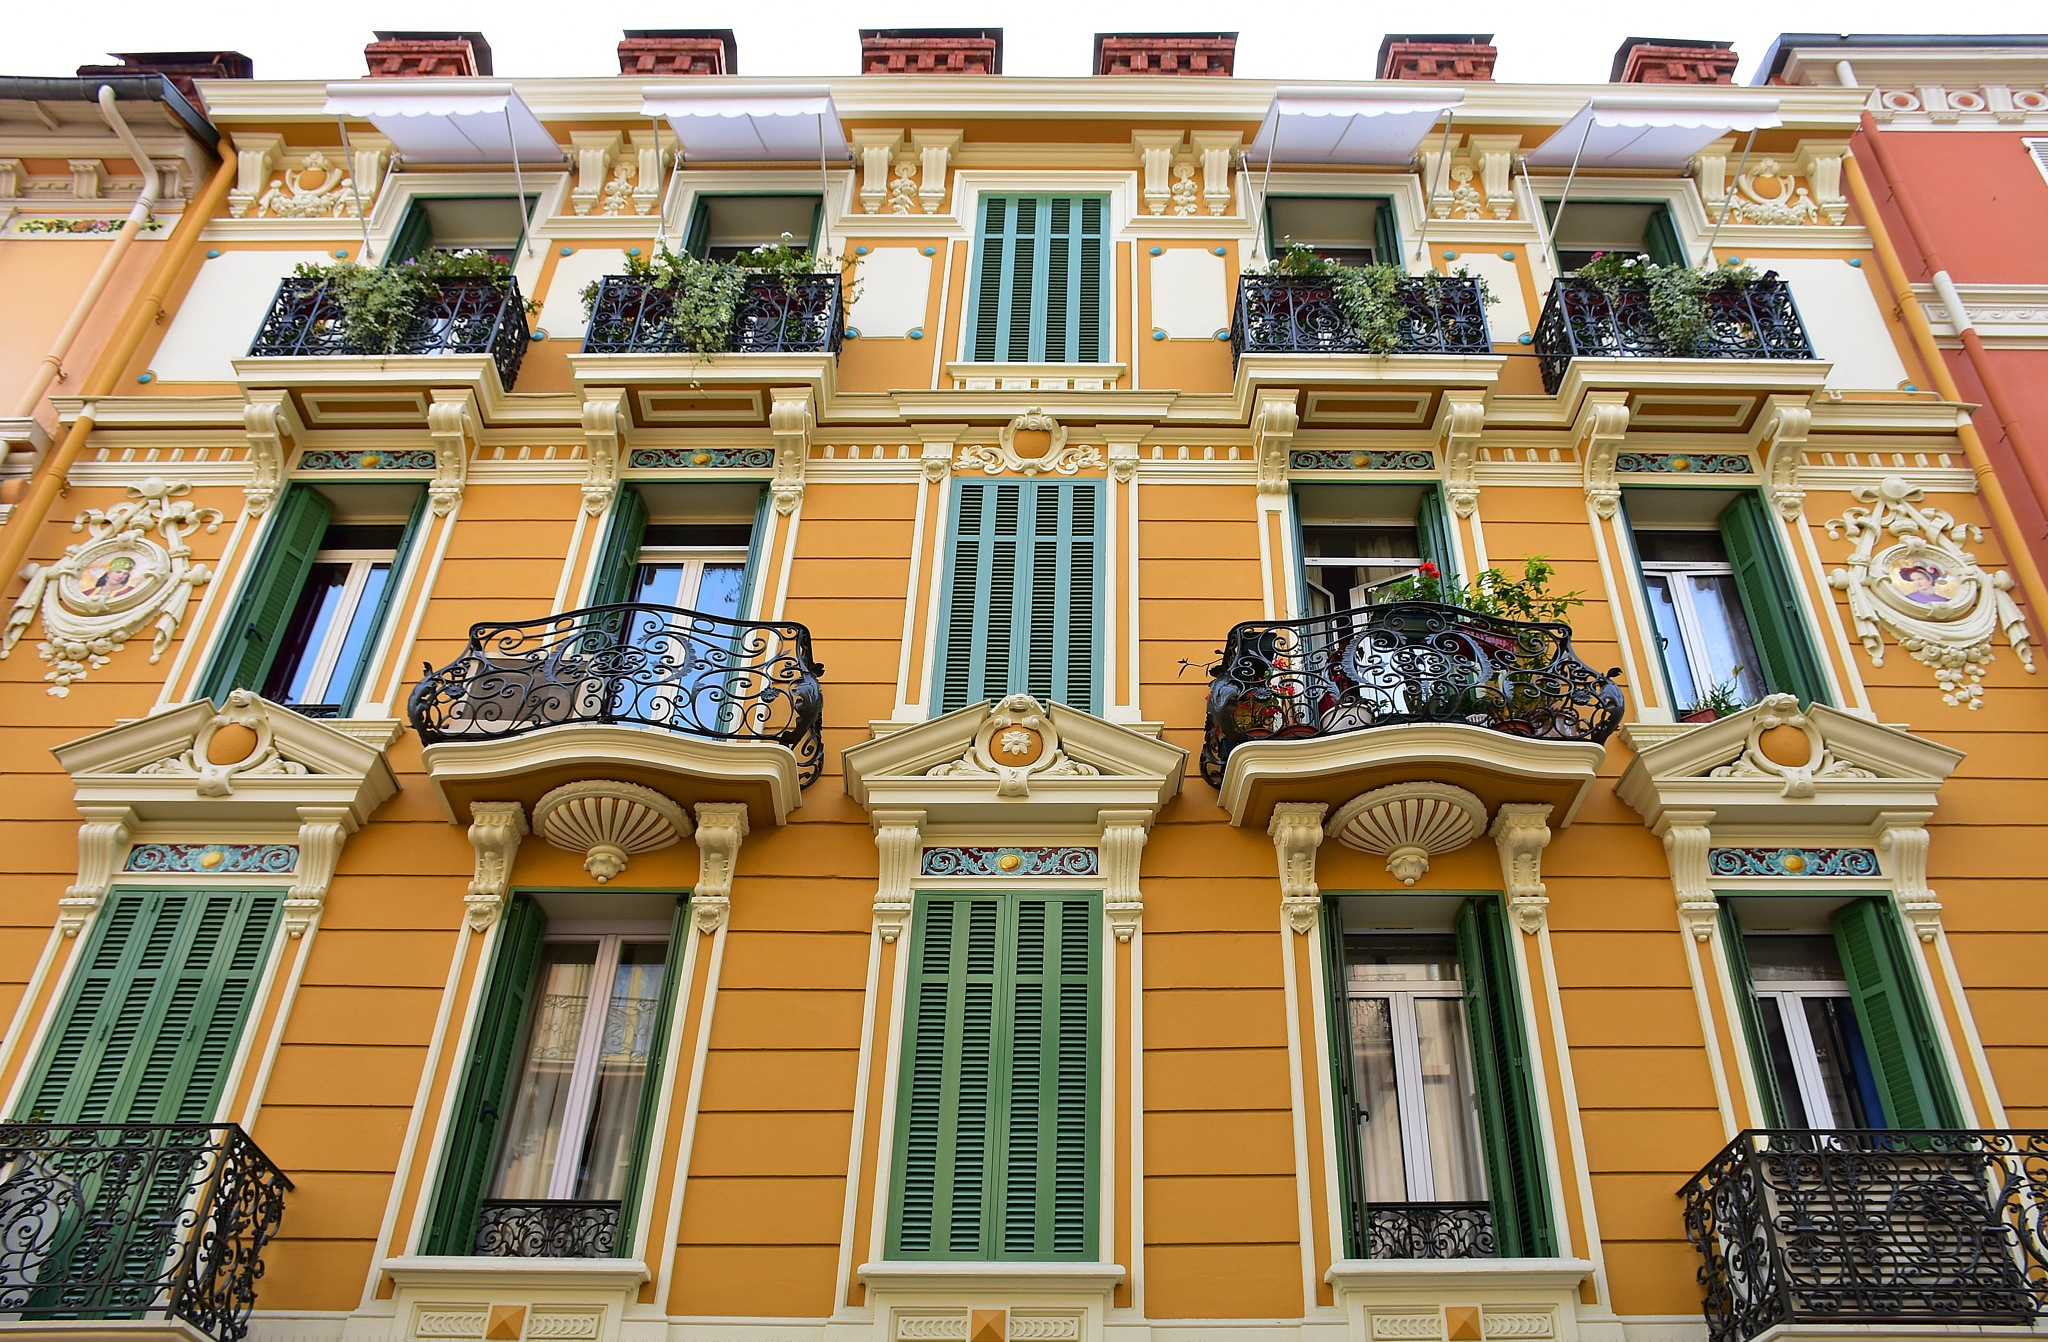 Balconies of Monaco by liwesta